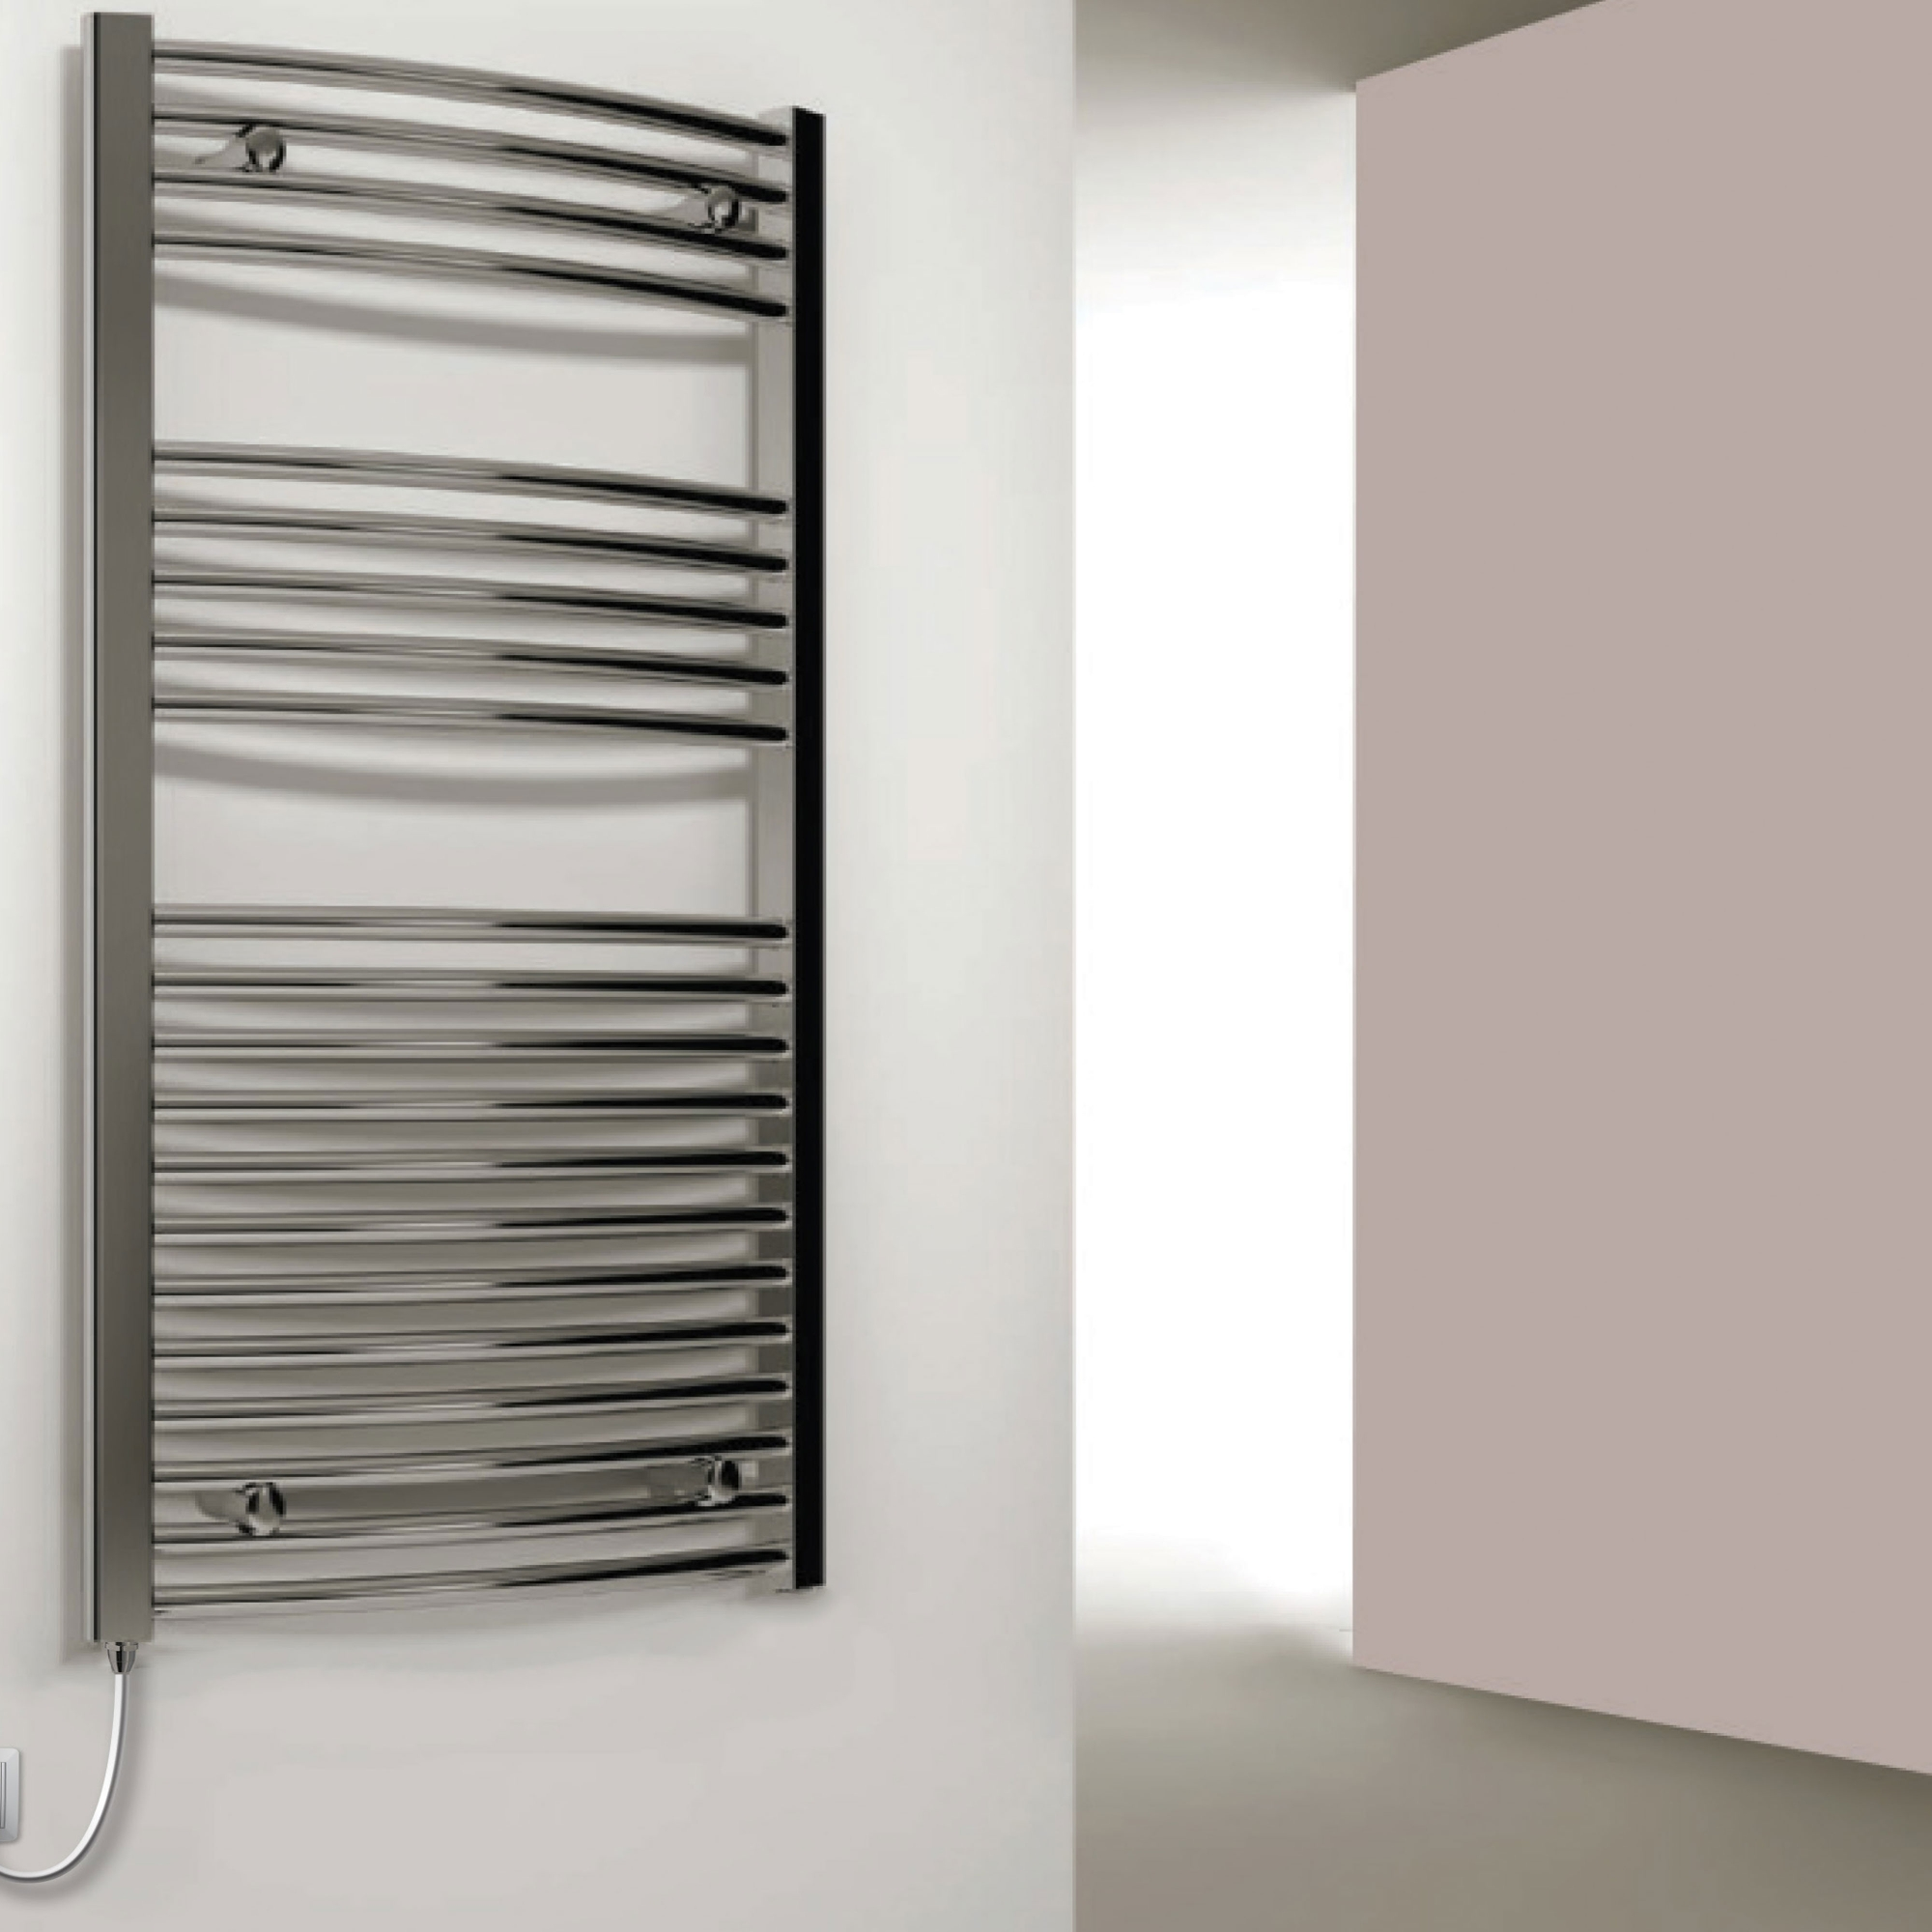 Reina Capo Curved Electric Heated Towel Rail 1000mm H x 500mm W Chrome